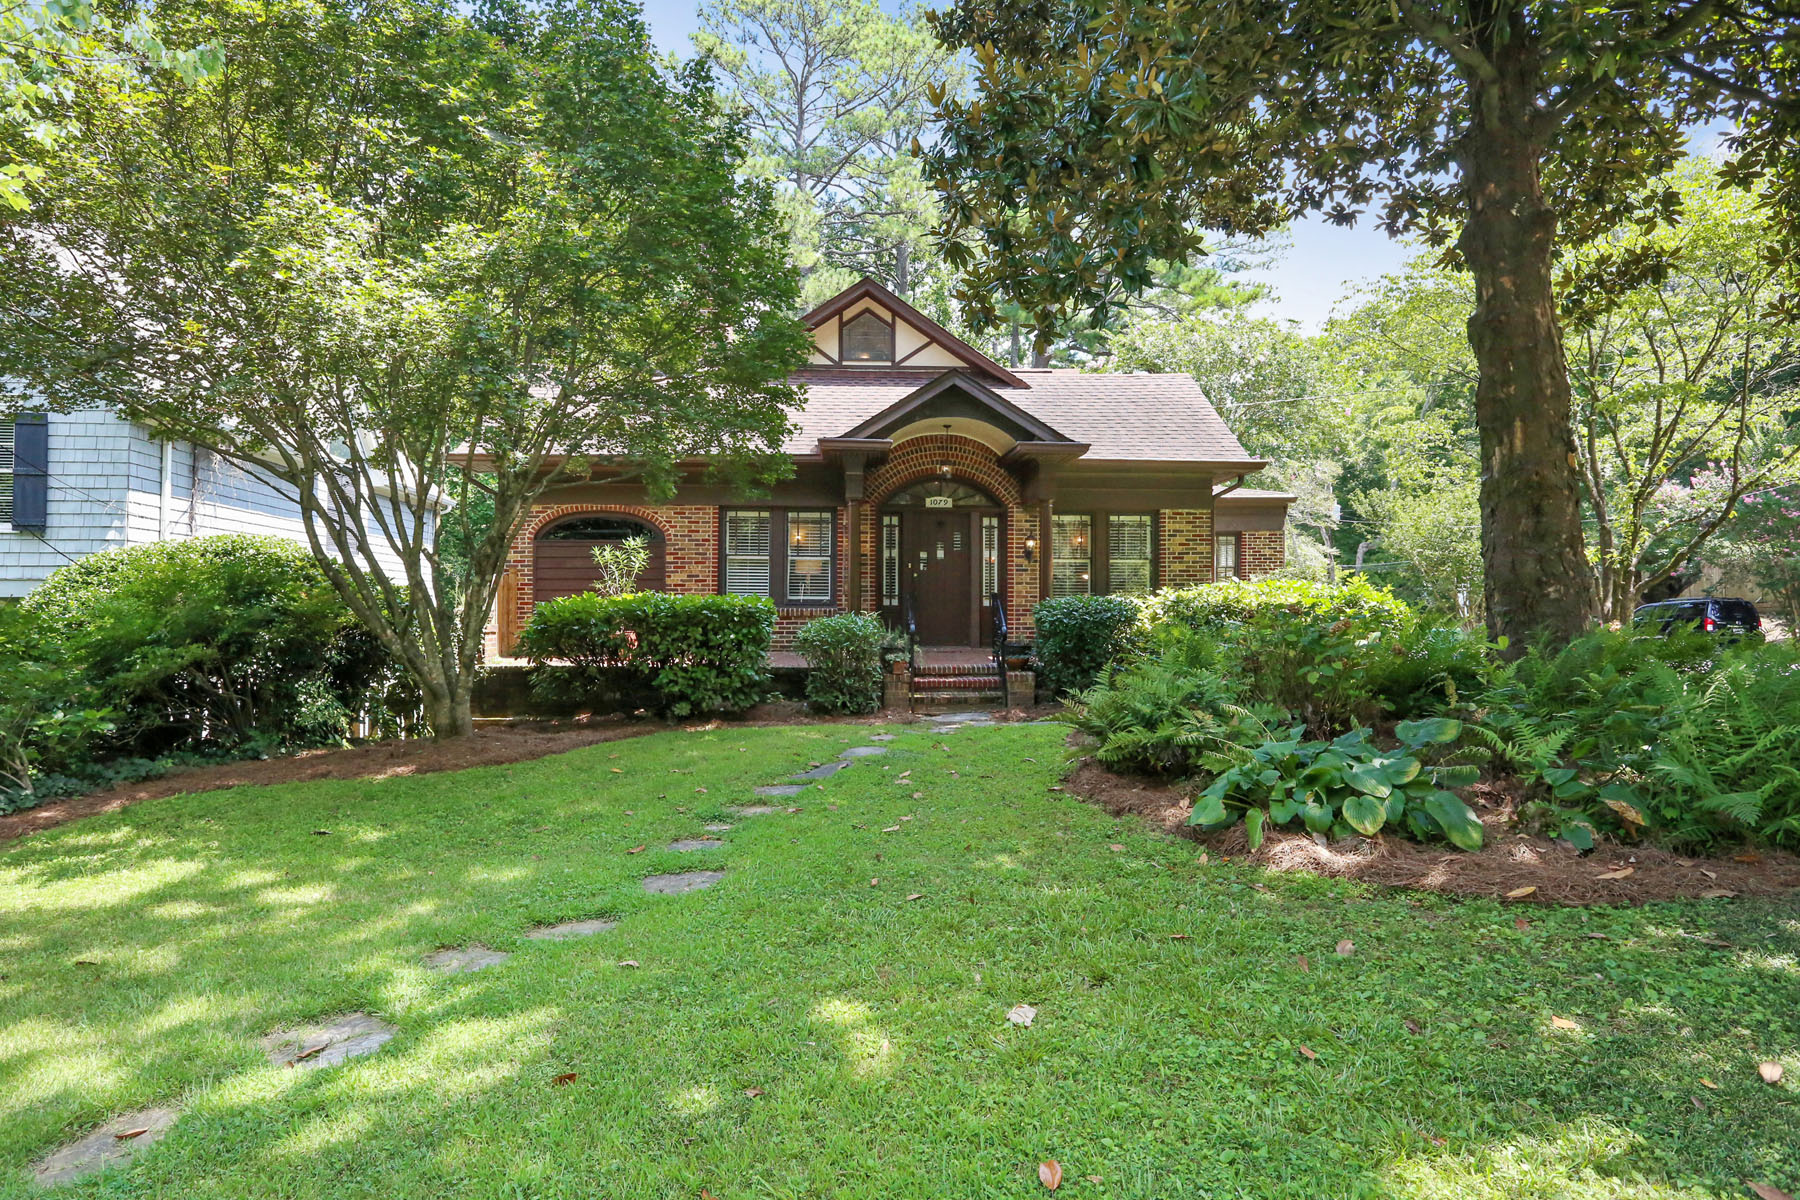 Single Family Home for Sale at Druid Hills Renovated Gem 1079 Clifton Rd NE, Druid Hills, Atlanta, Georgia, 30307 United States